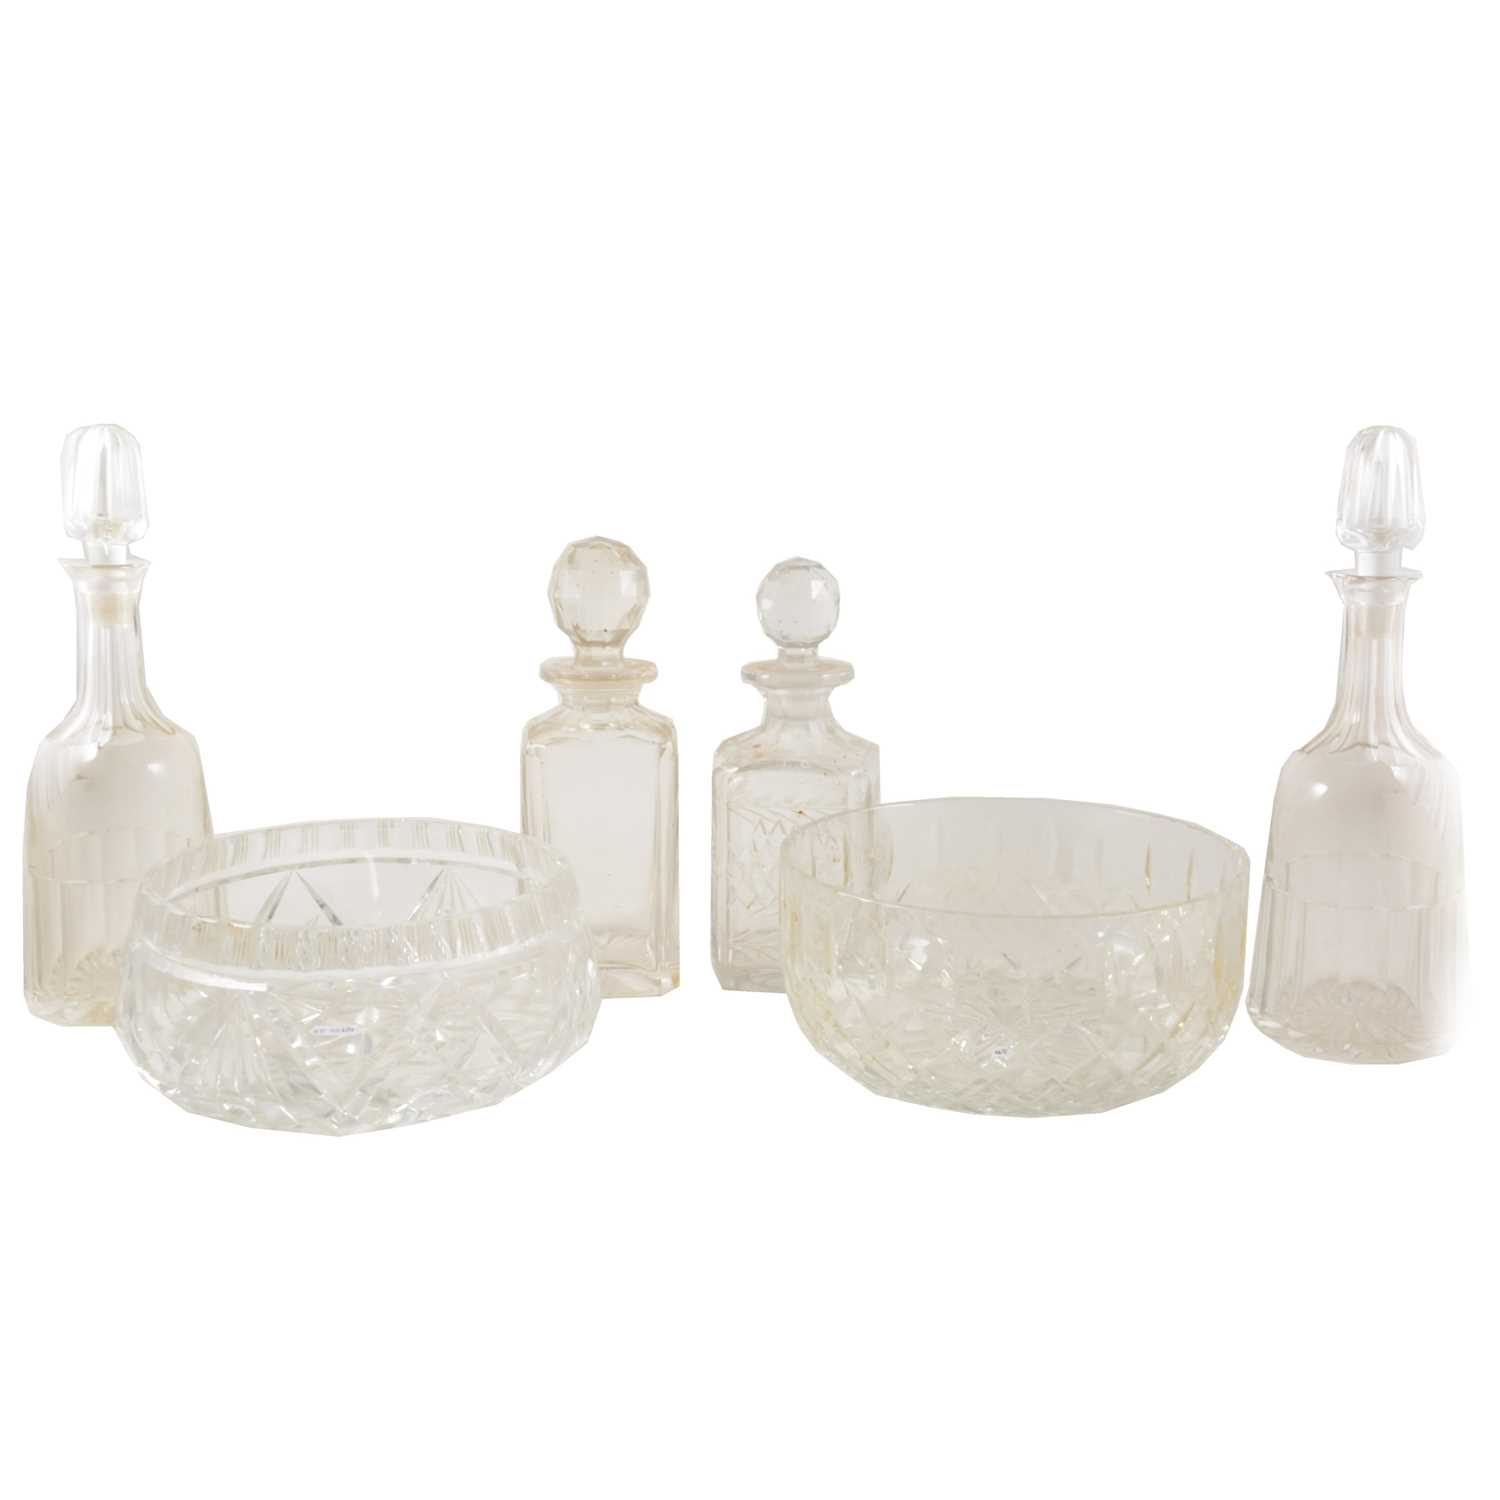 Lot 27-Pair of cut-glass mallet shaped decanters, spirit decanters, and fruit bowls